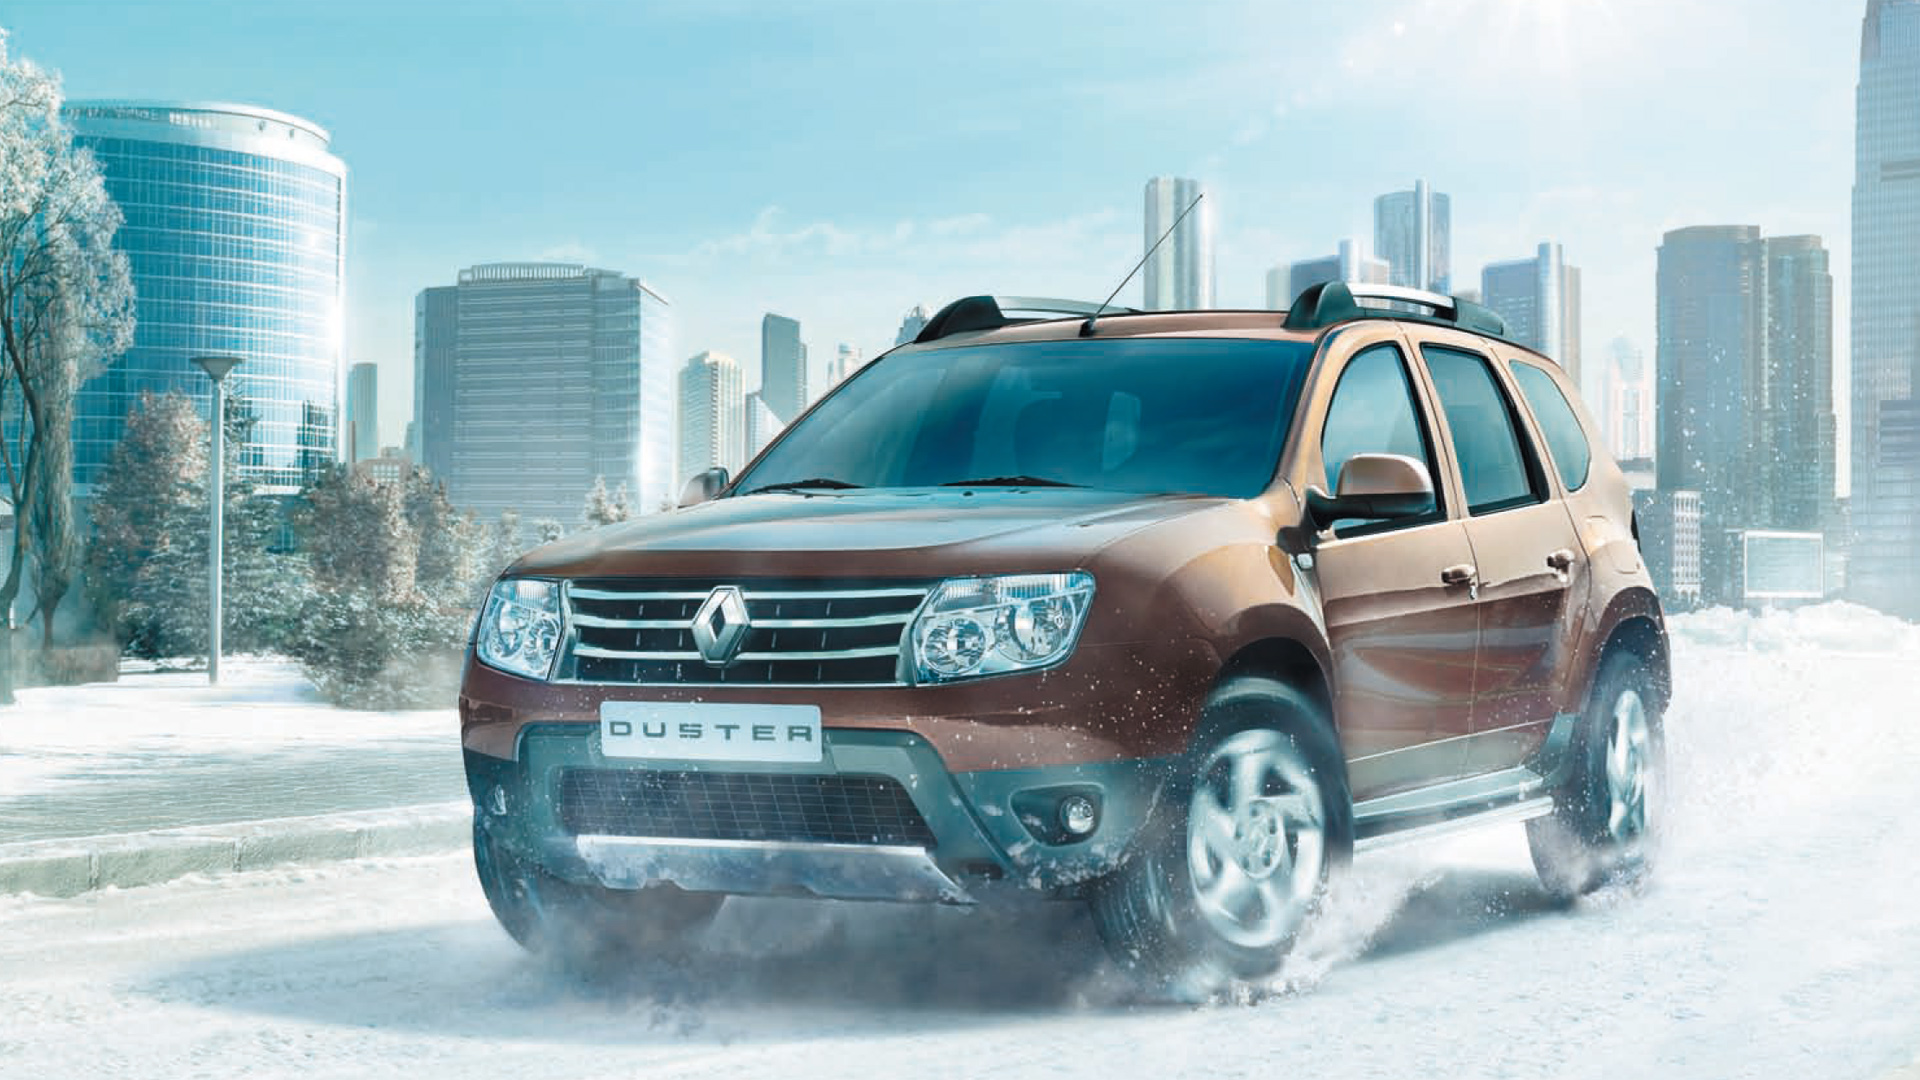 Renault duster voltagebd Image collections